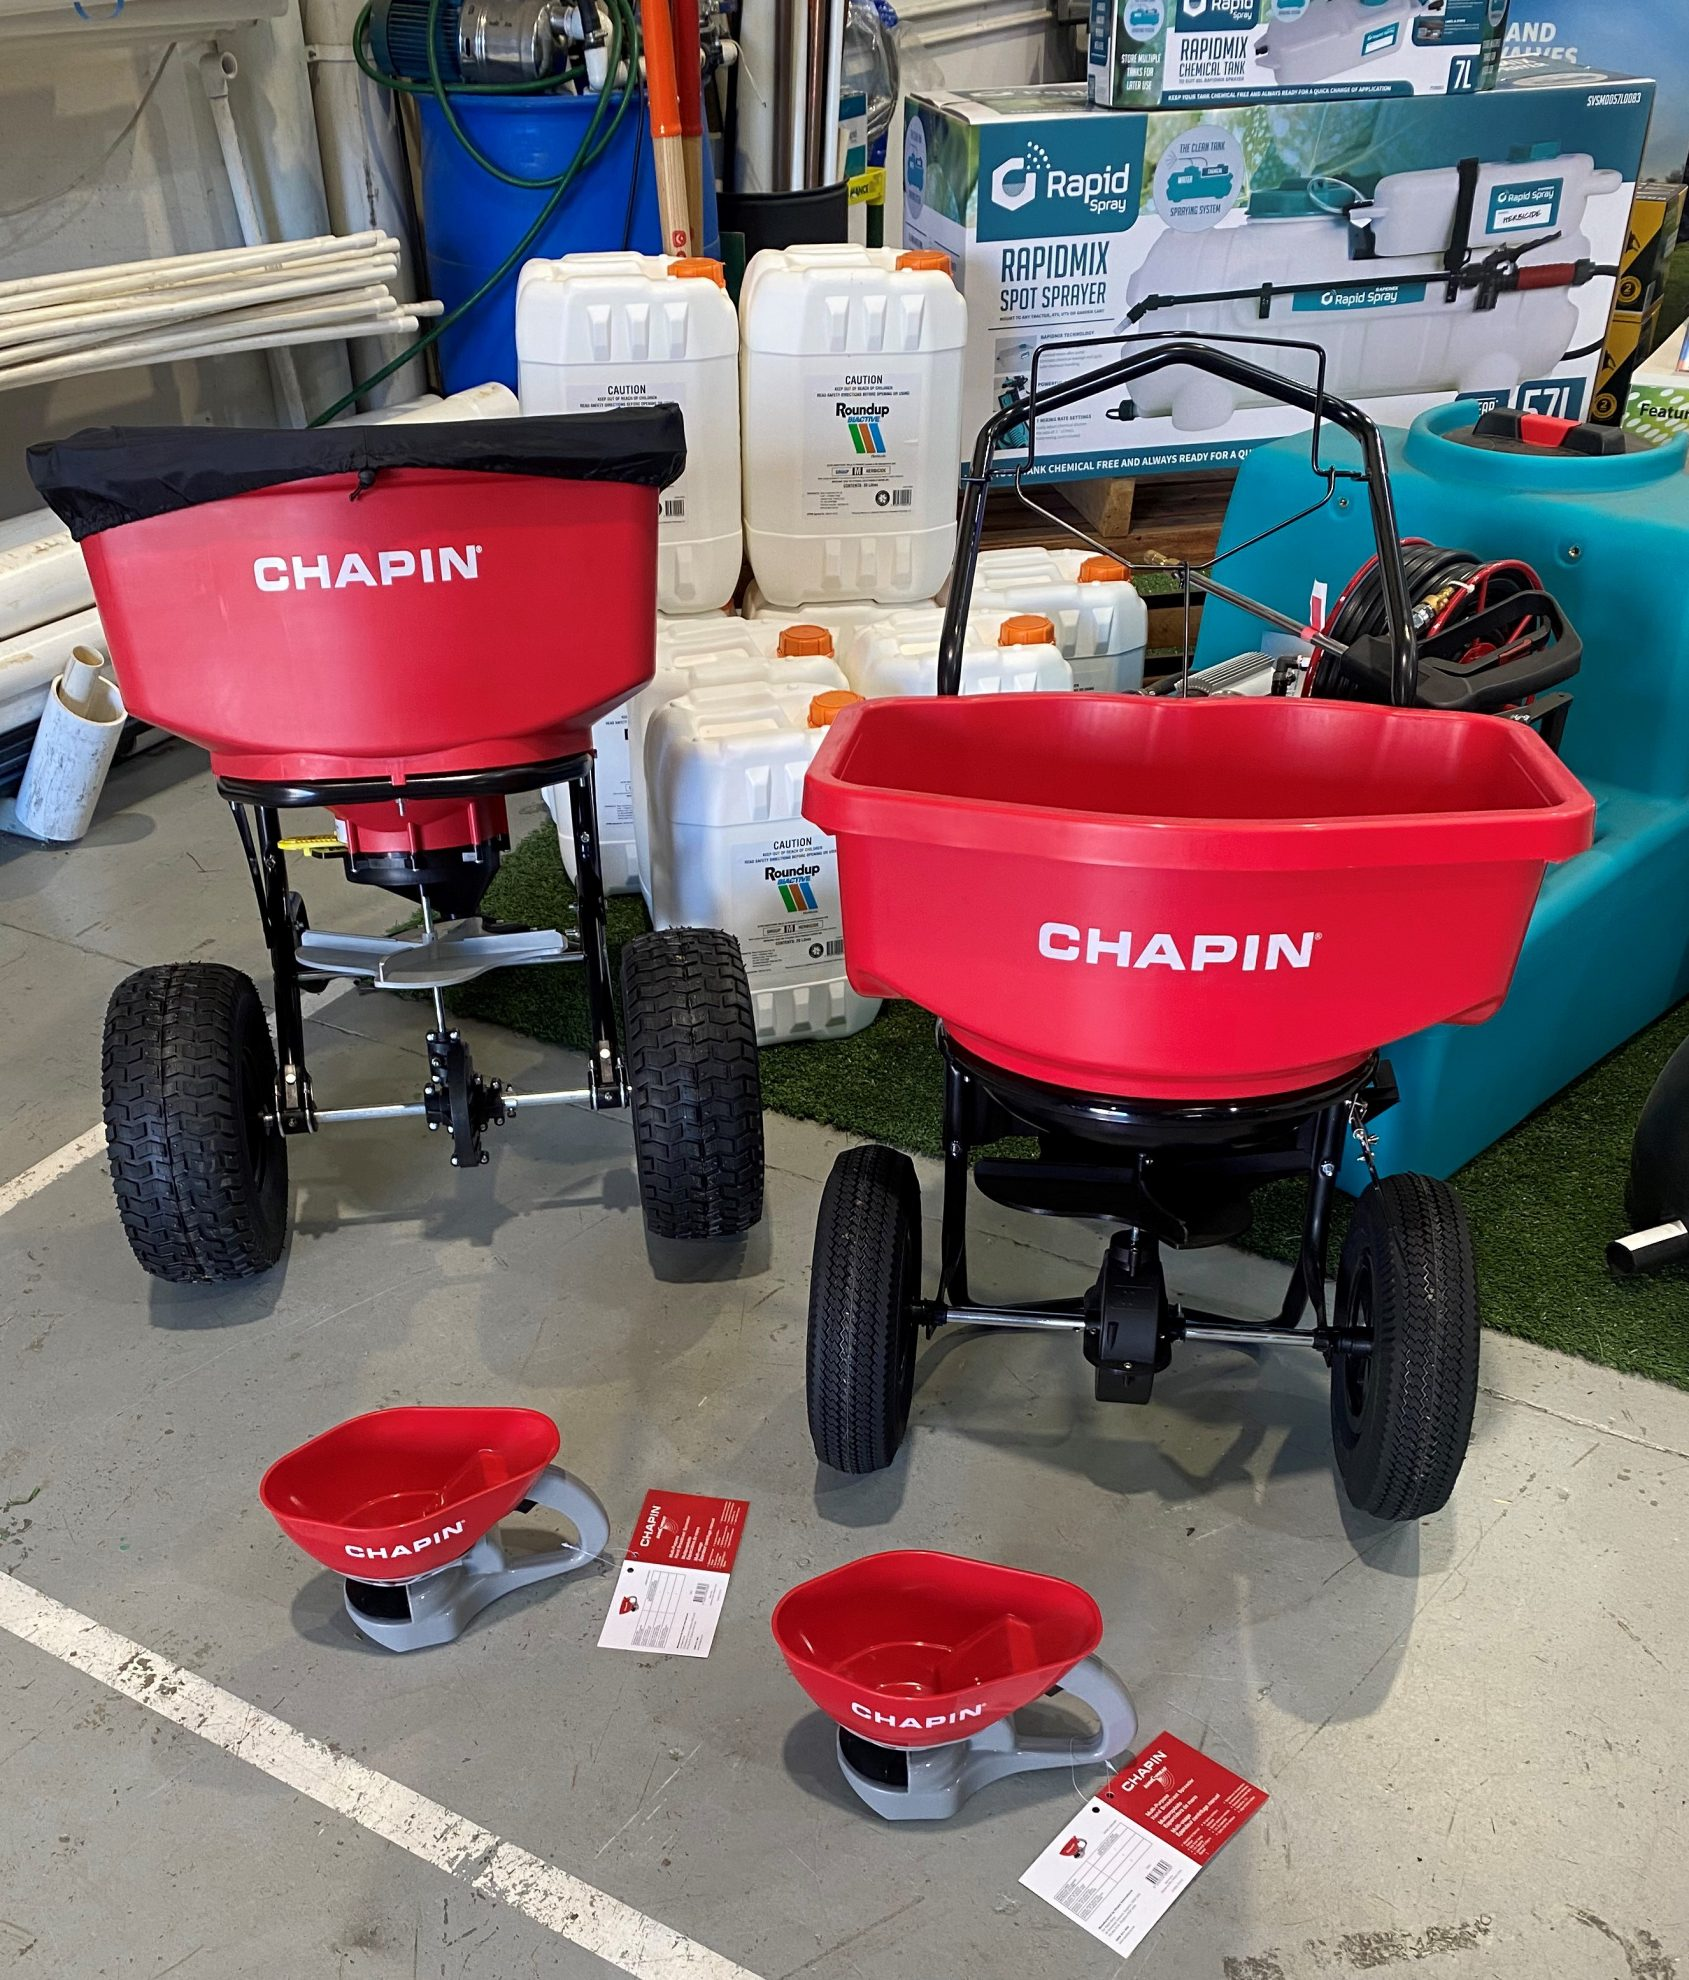 Chapin products on display